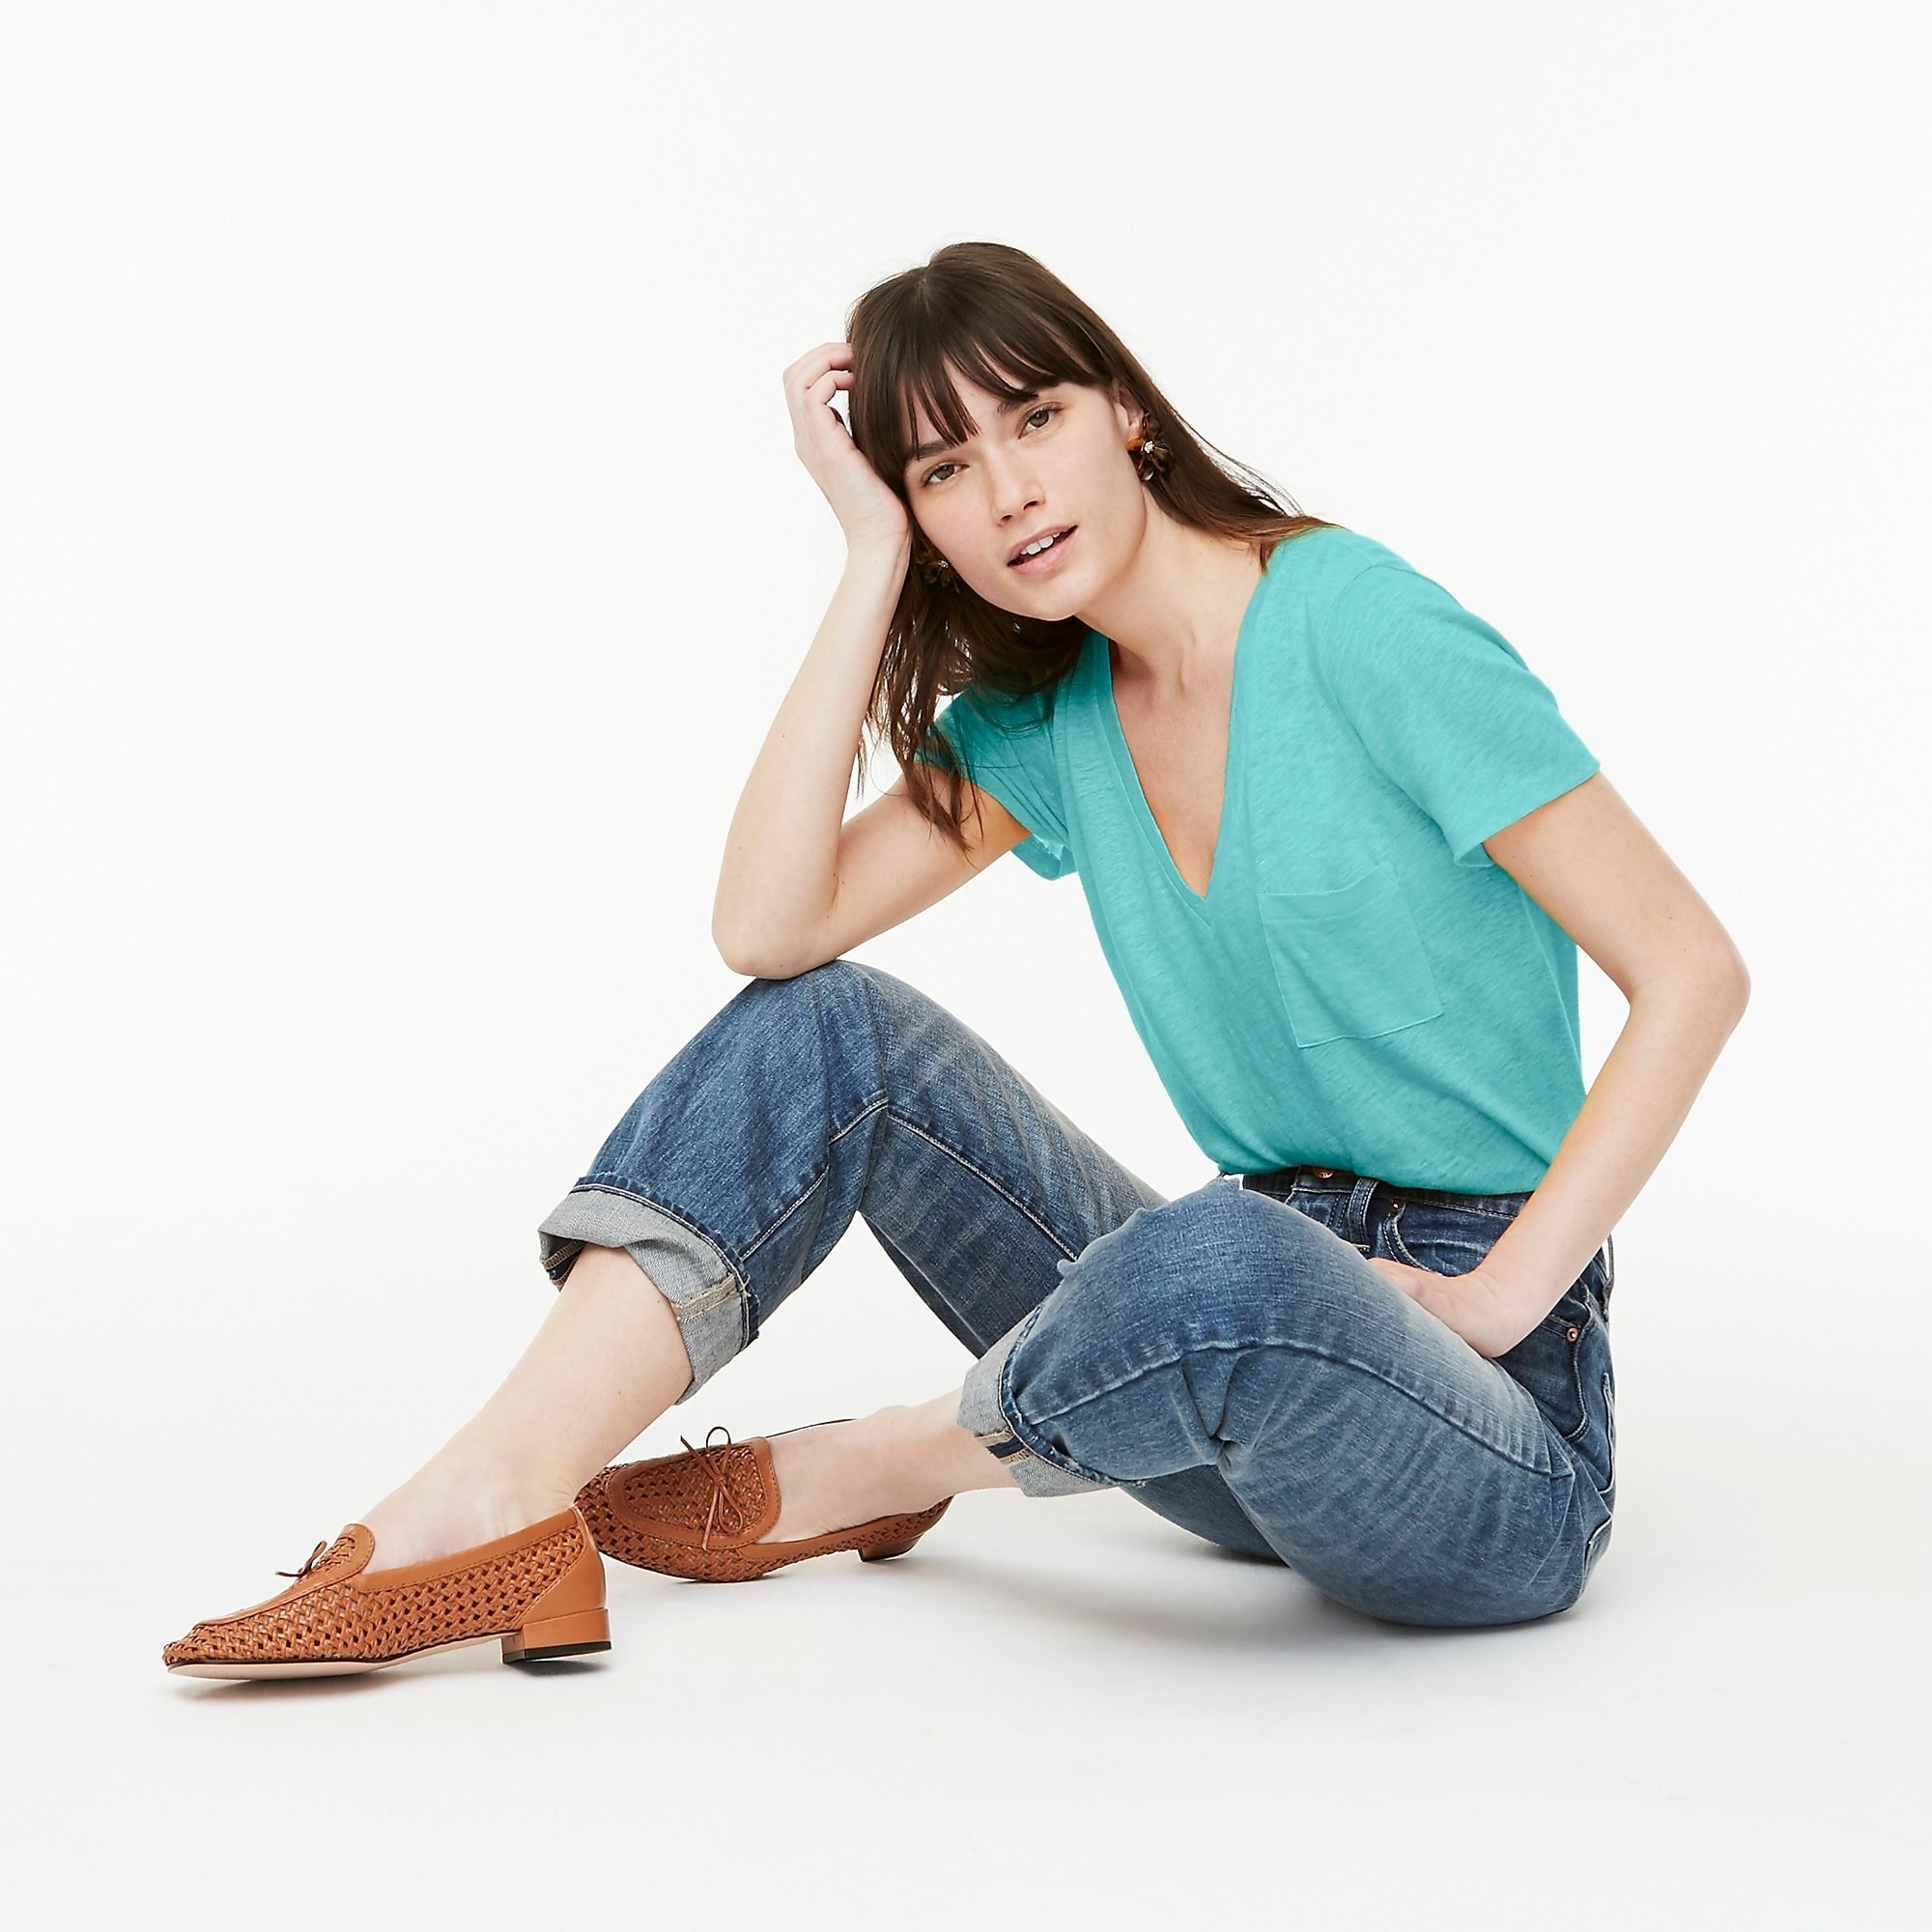 Model wearing the V-neck shirt paired with jeans